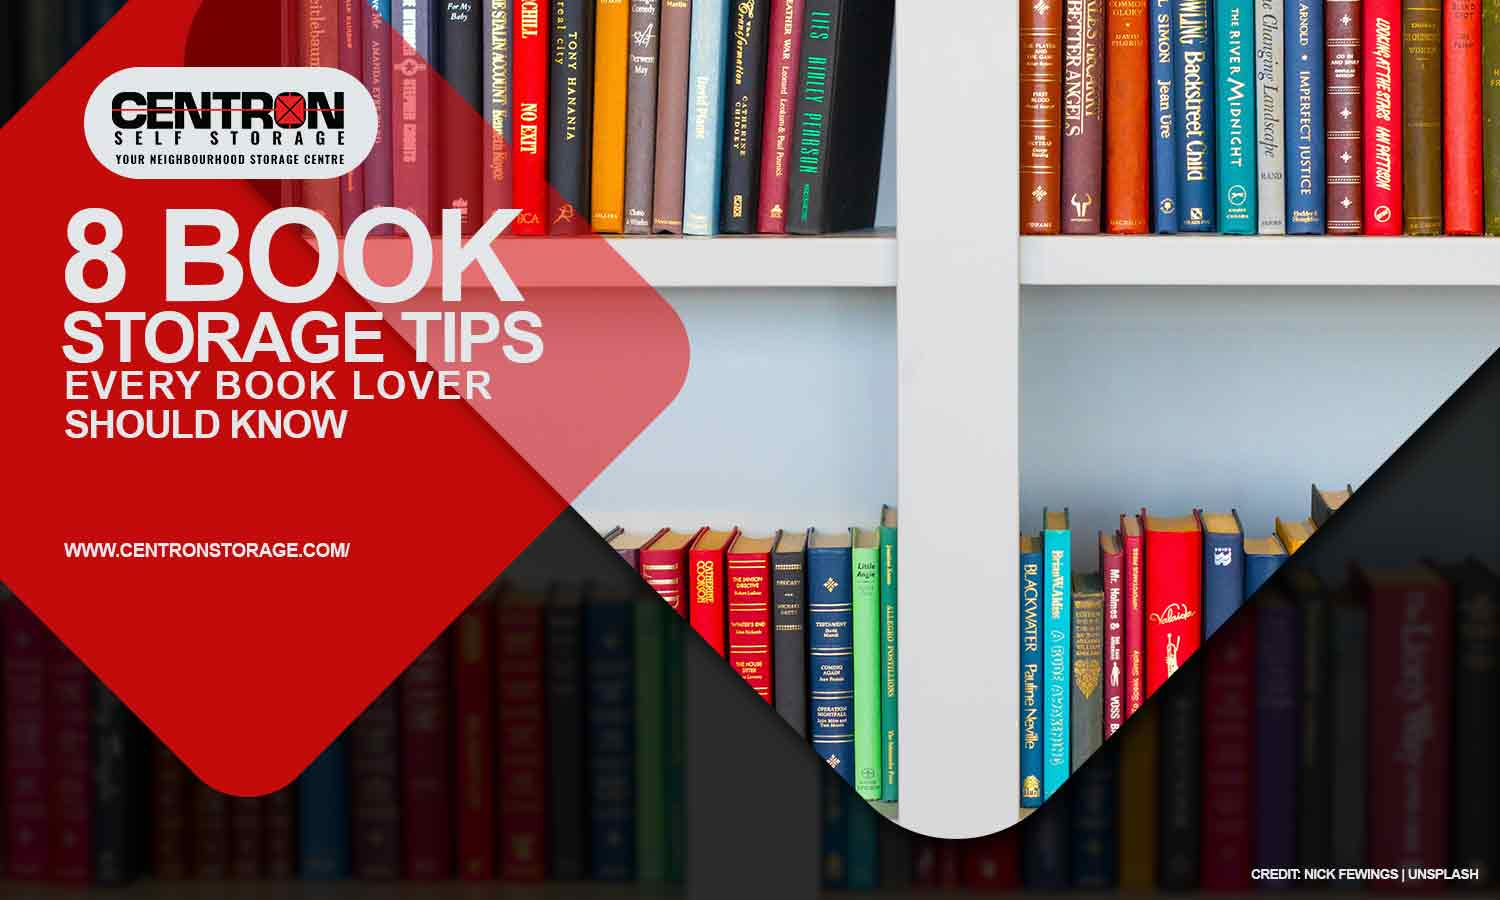 8 Book Storage Tips Every Book Lover Should Know